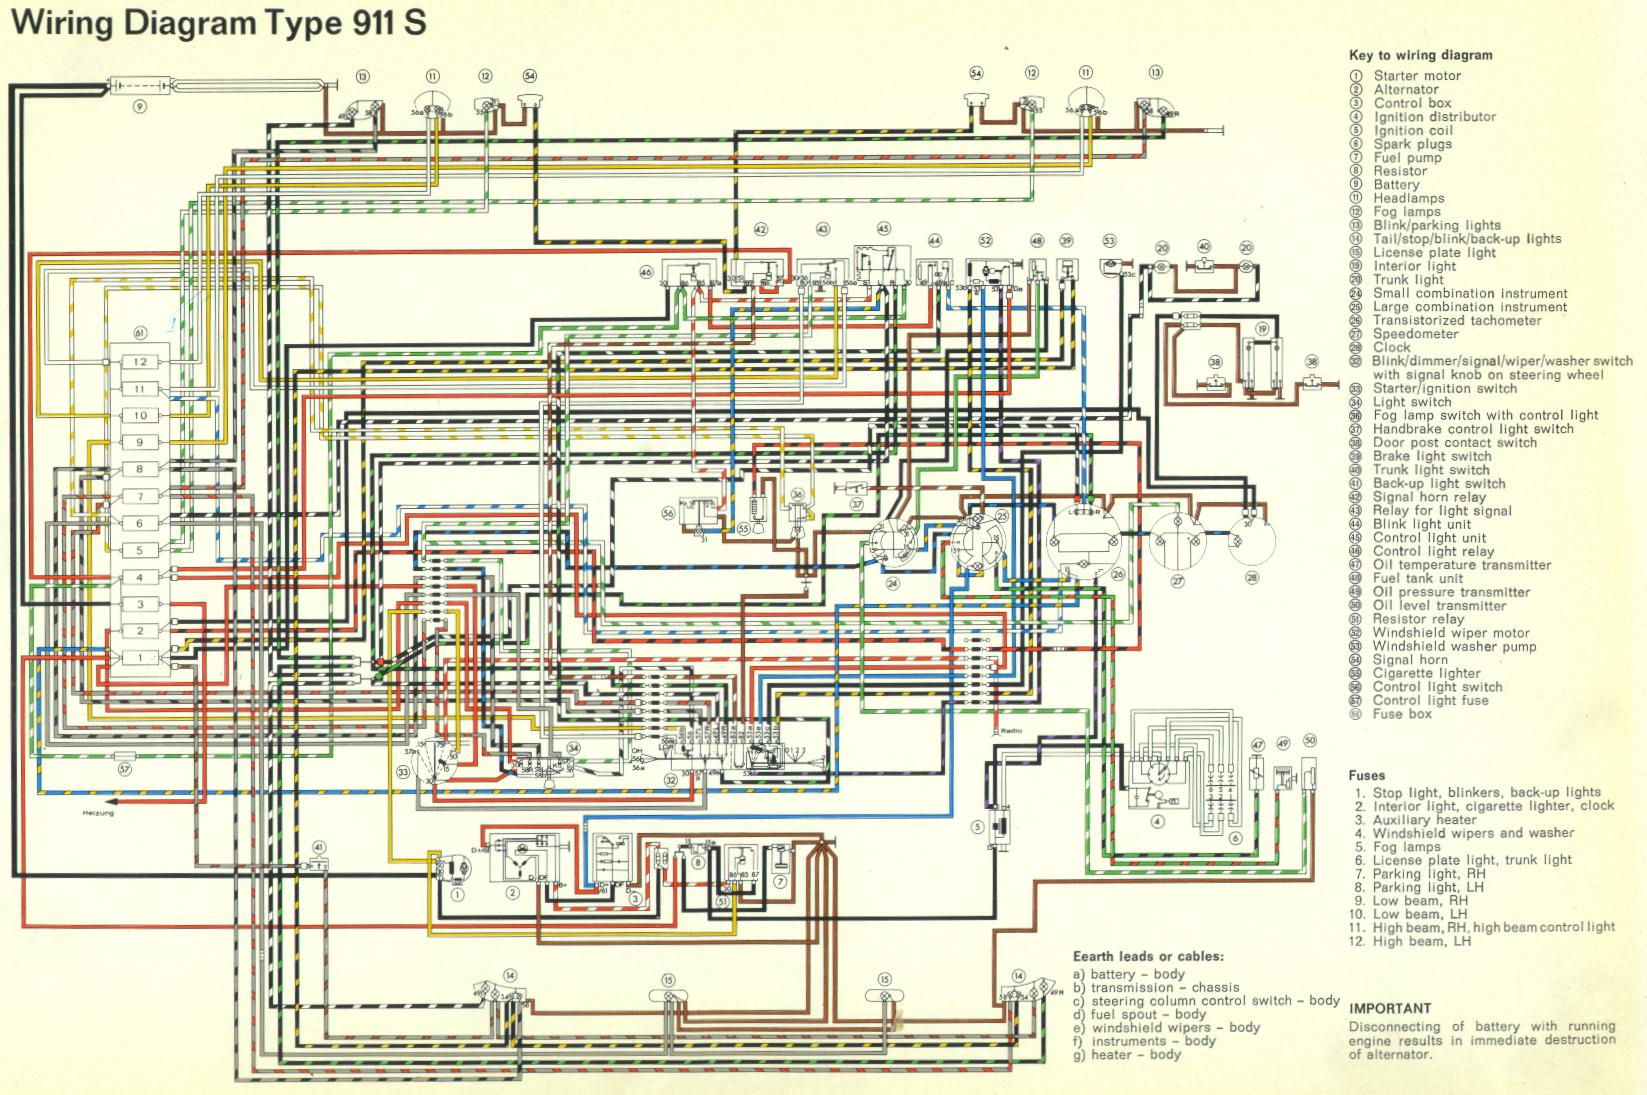 New Circuits Page 50 Ledcircuits 2 Delabs Schematics Electronic Circuit Porsche 911 Parts Listings Diagrams